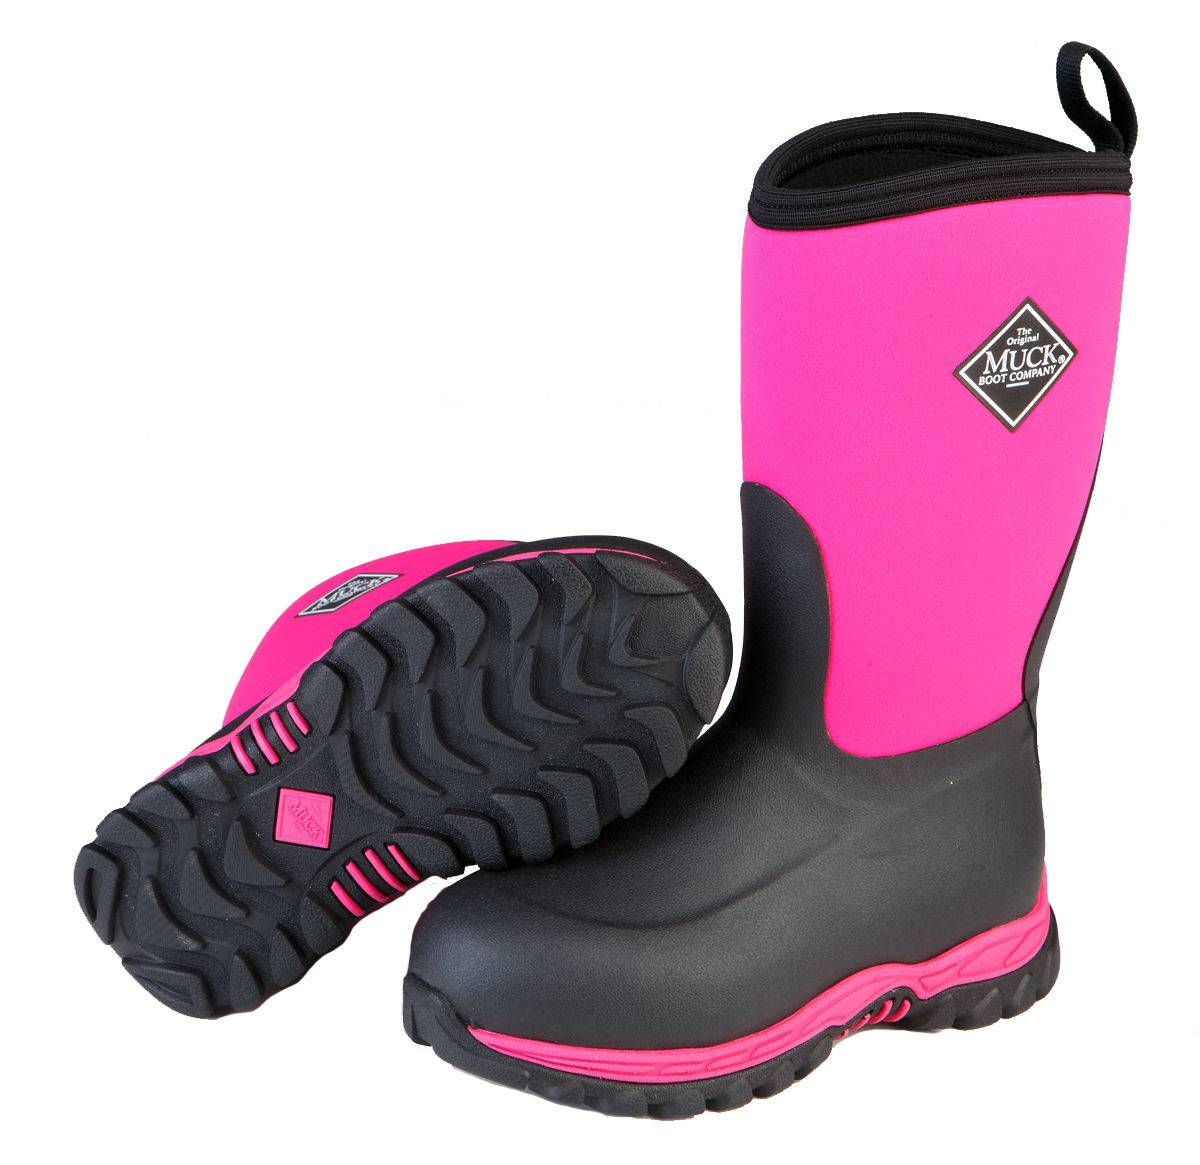 Muck Boots Kids Rugged II - Pink/Black